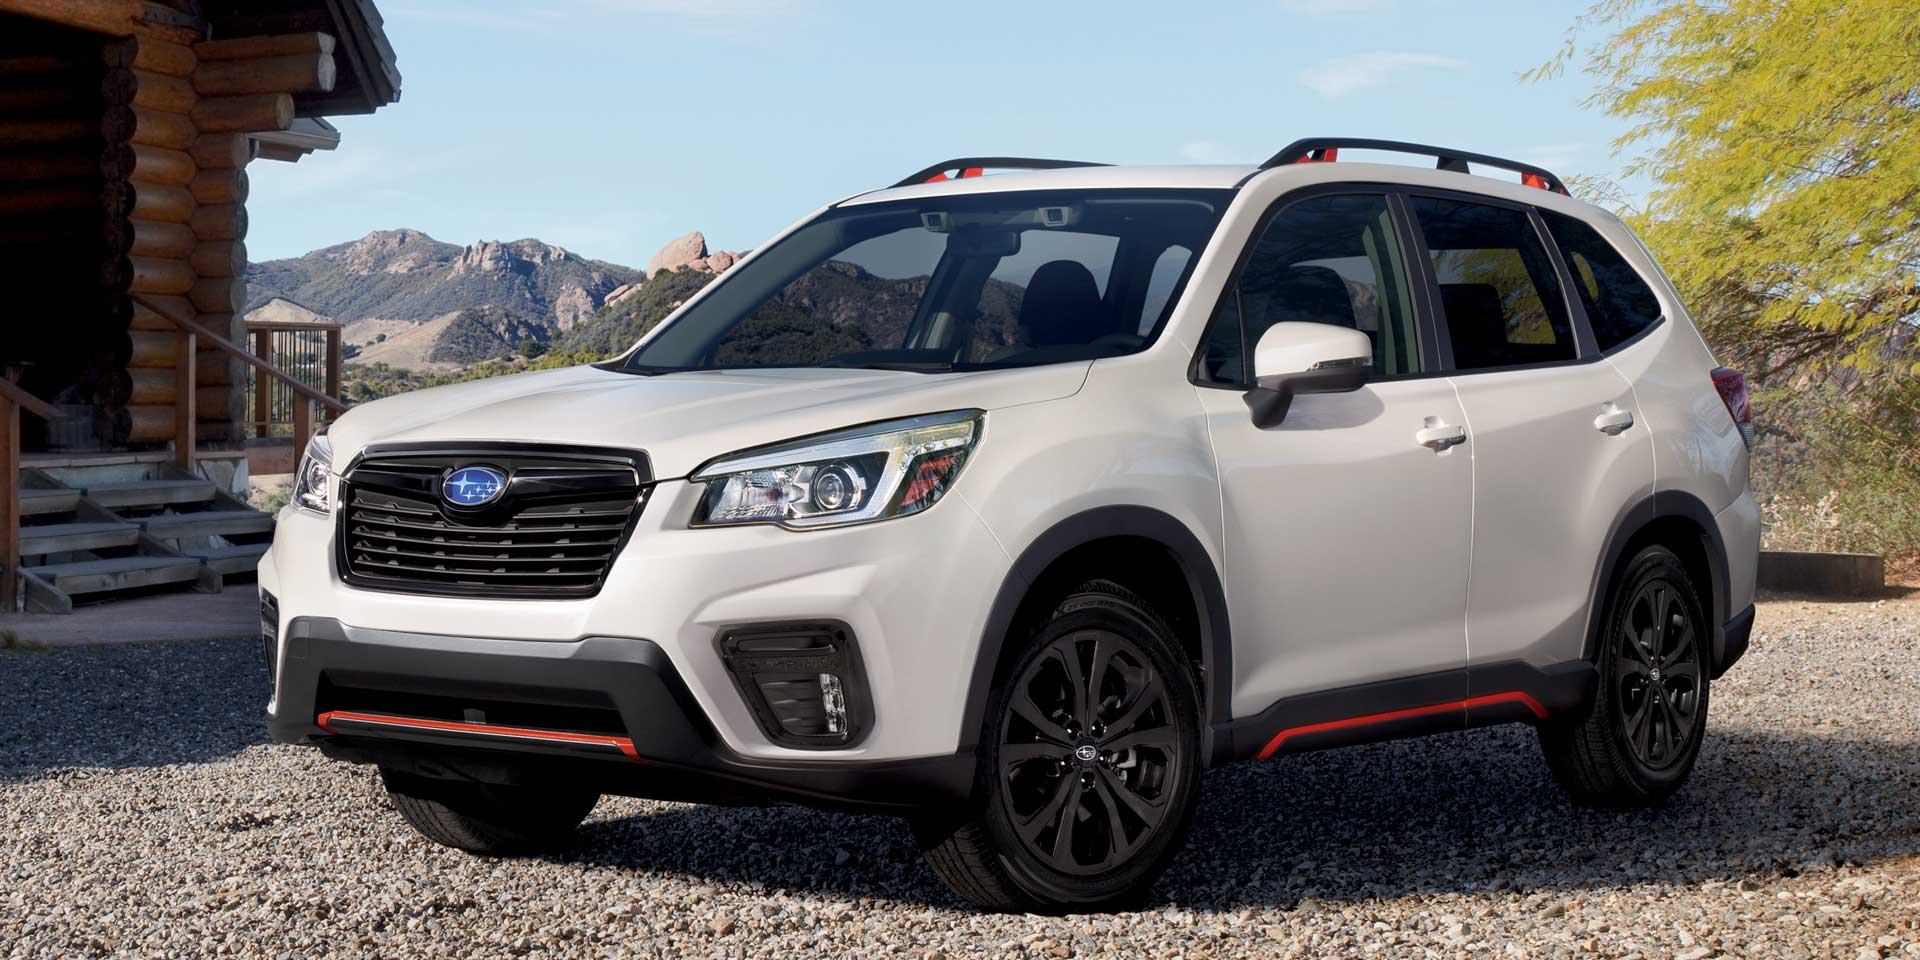 2019 Subaru Forester Vehicles On Display Chicago Auto Show